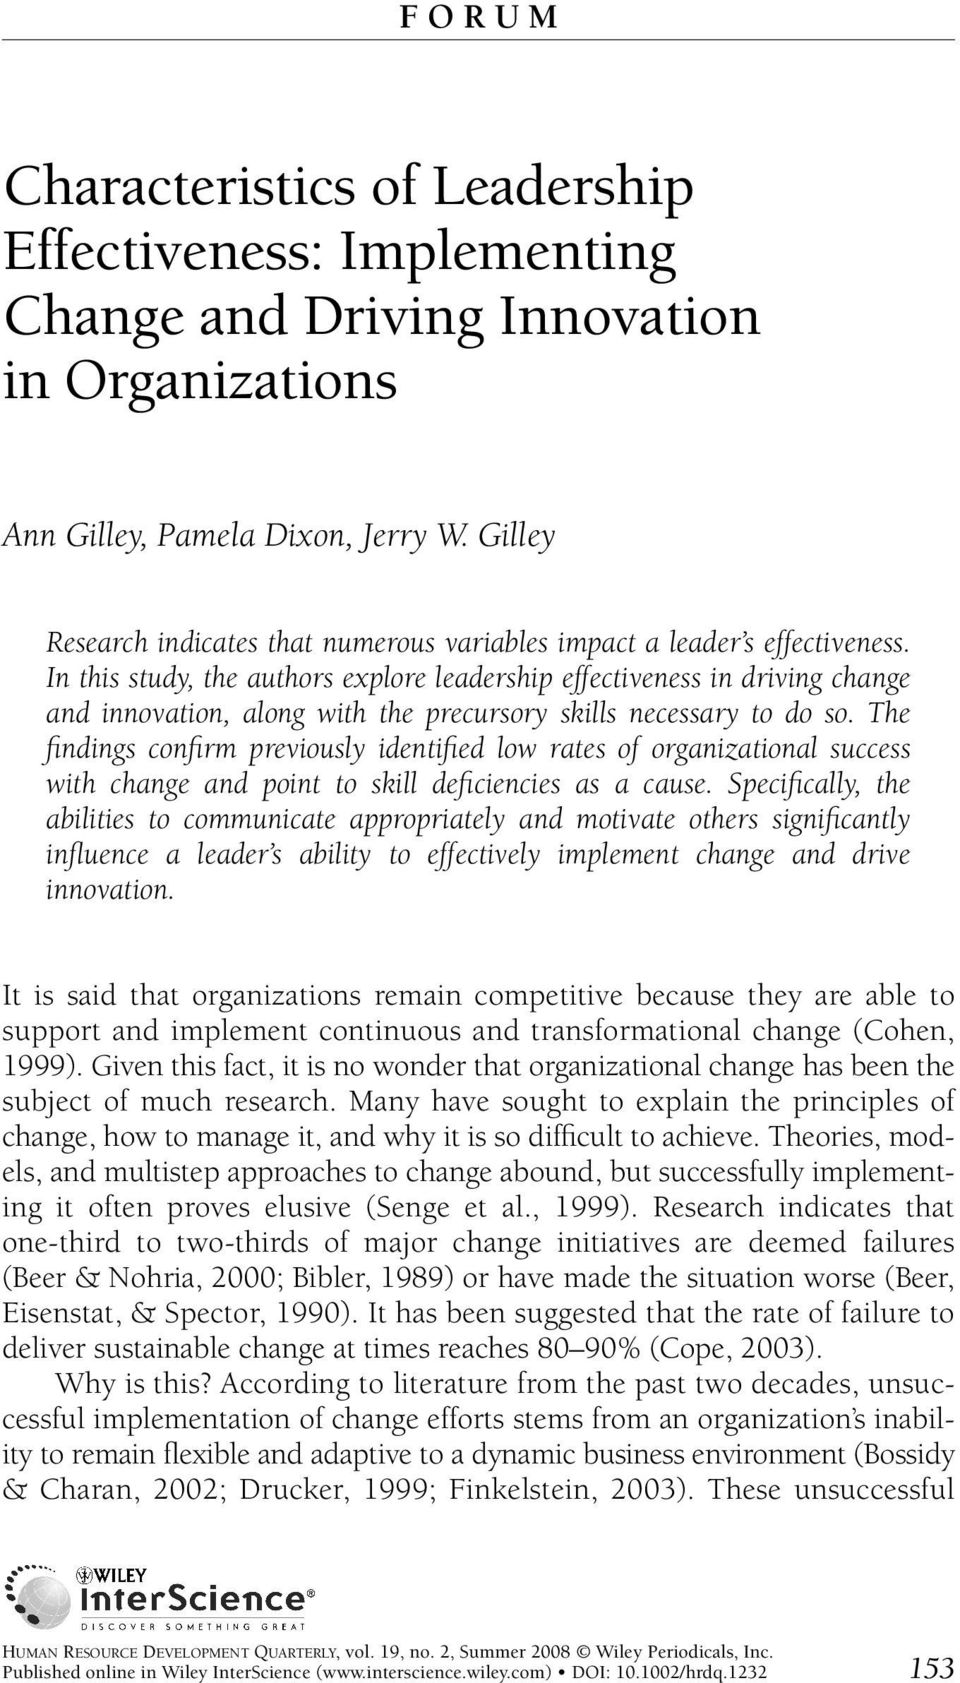 In this study, the authors explore leadership effectiveness in driving change and innovation, along with the precursory skills necessary to do so.